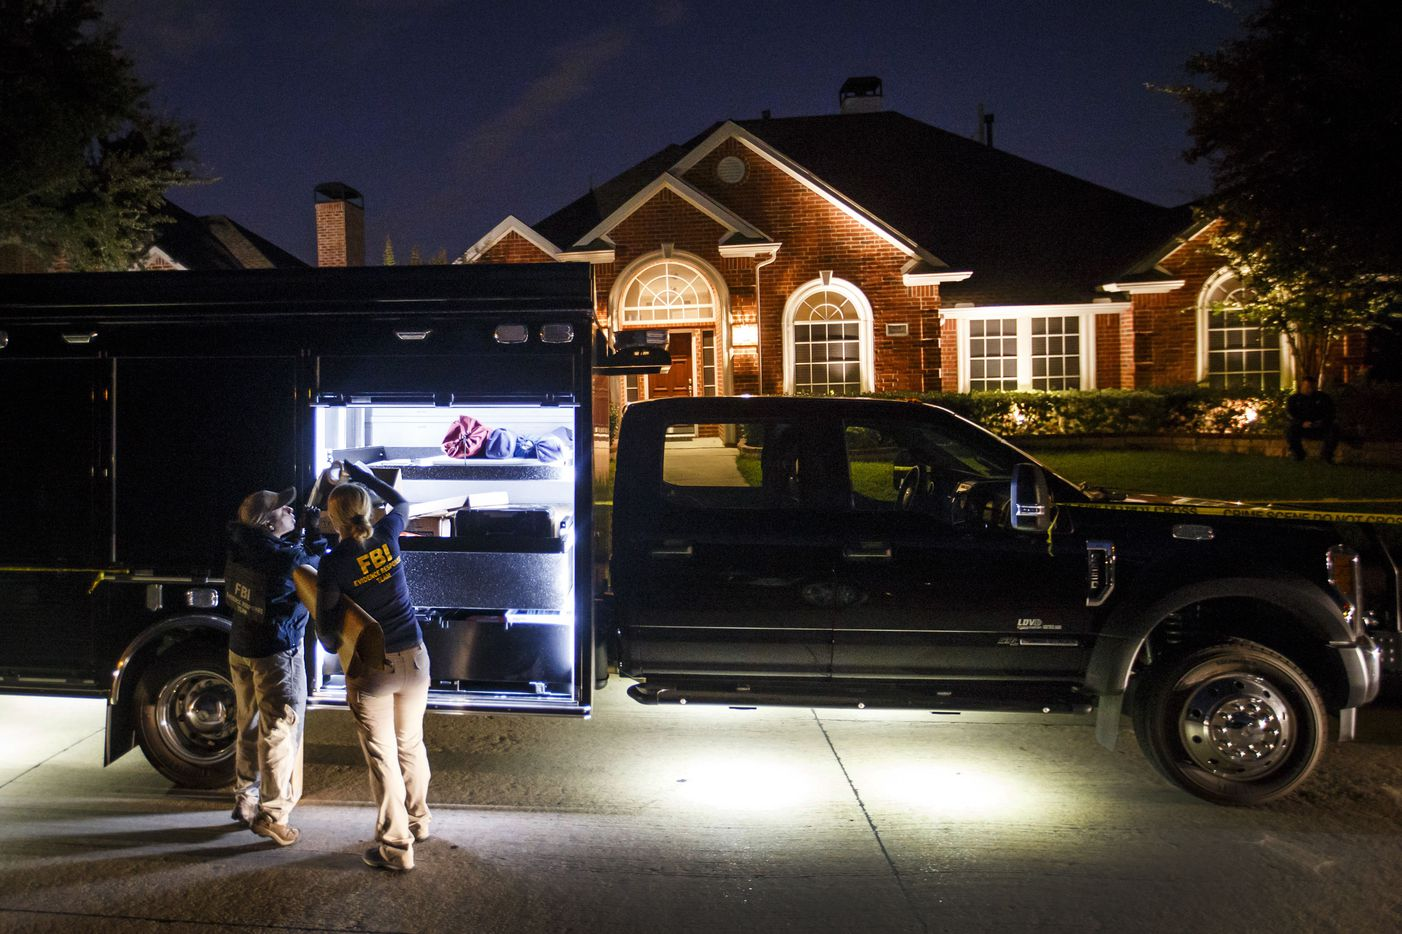 Members of an FBI evidence response team work at the family home of Sherin Mathews in the 900 block Sunningdale, on Tuesday, Oct. 10, 2017, in Richardson, Texas.  Authorities on Tuesday evening searched the Richardson home of a 3-year-old girl who has been missing since Saturday when her father reportedly sent her outside as punishment for not drinking her milk.(Smiley N. Pool/The Dallas Morning News)